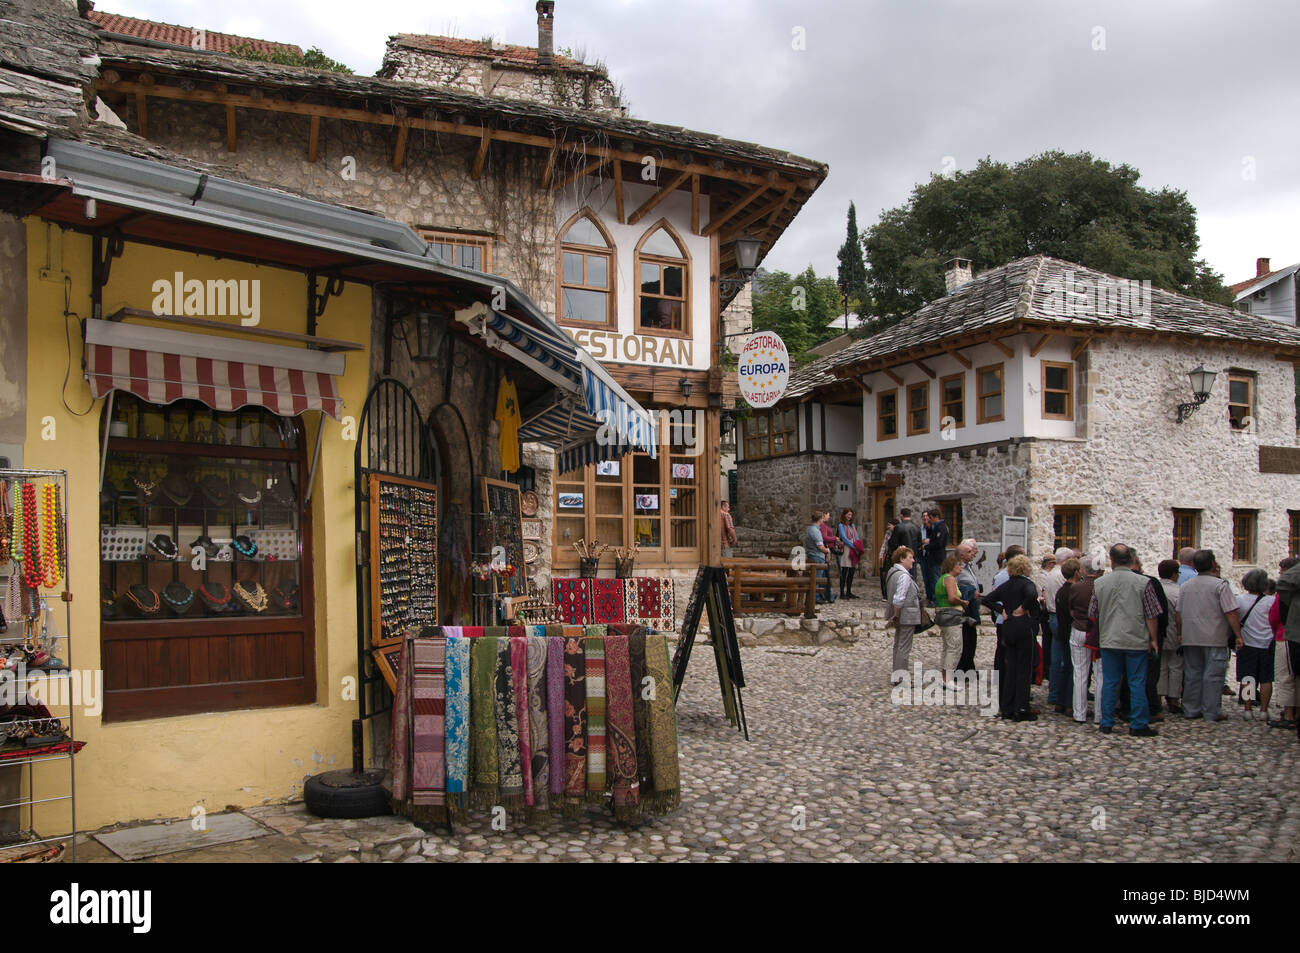 Historic Old Town of Mostar in Bosnia Herzegovina - Stock Image